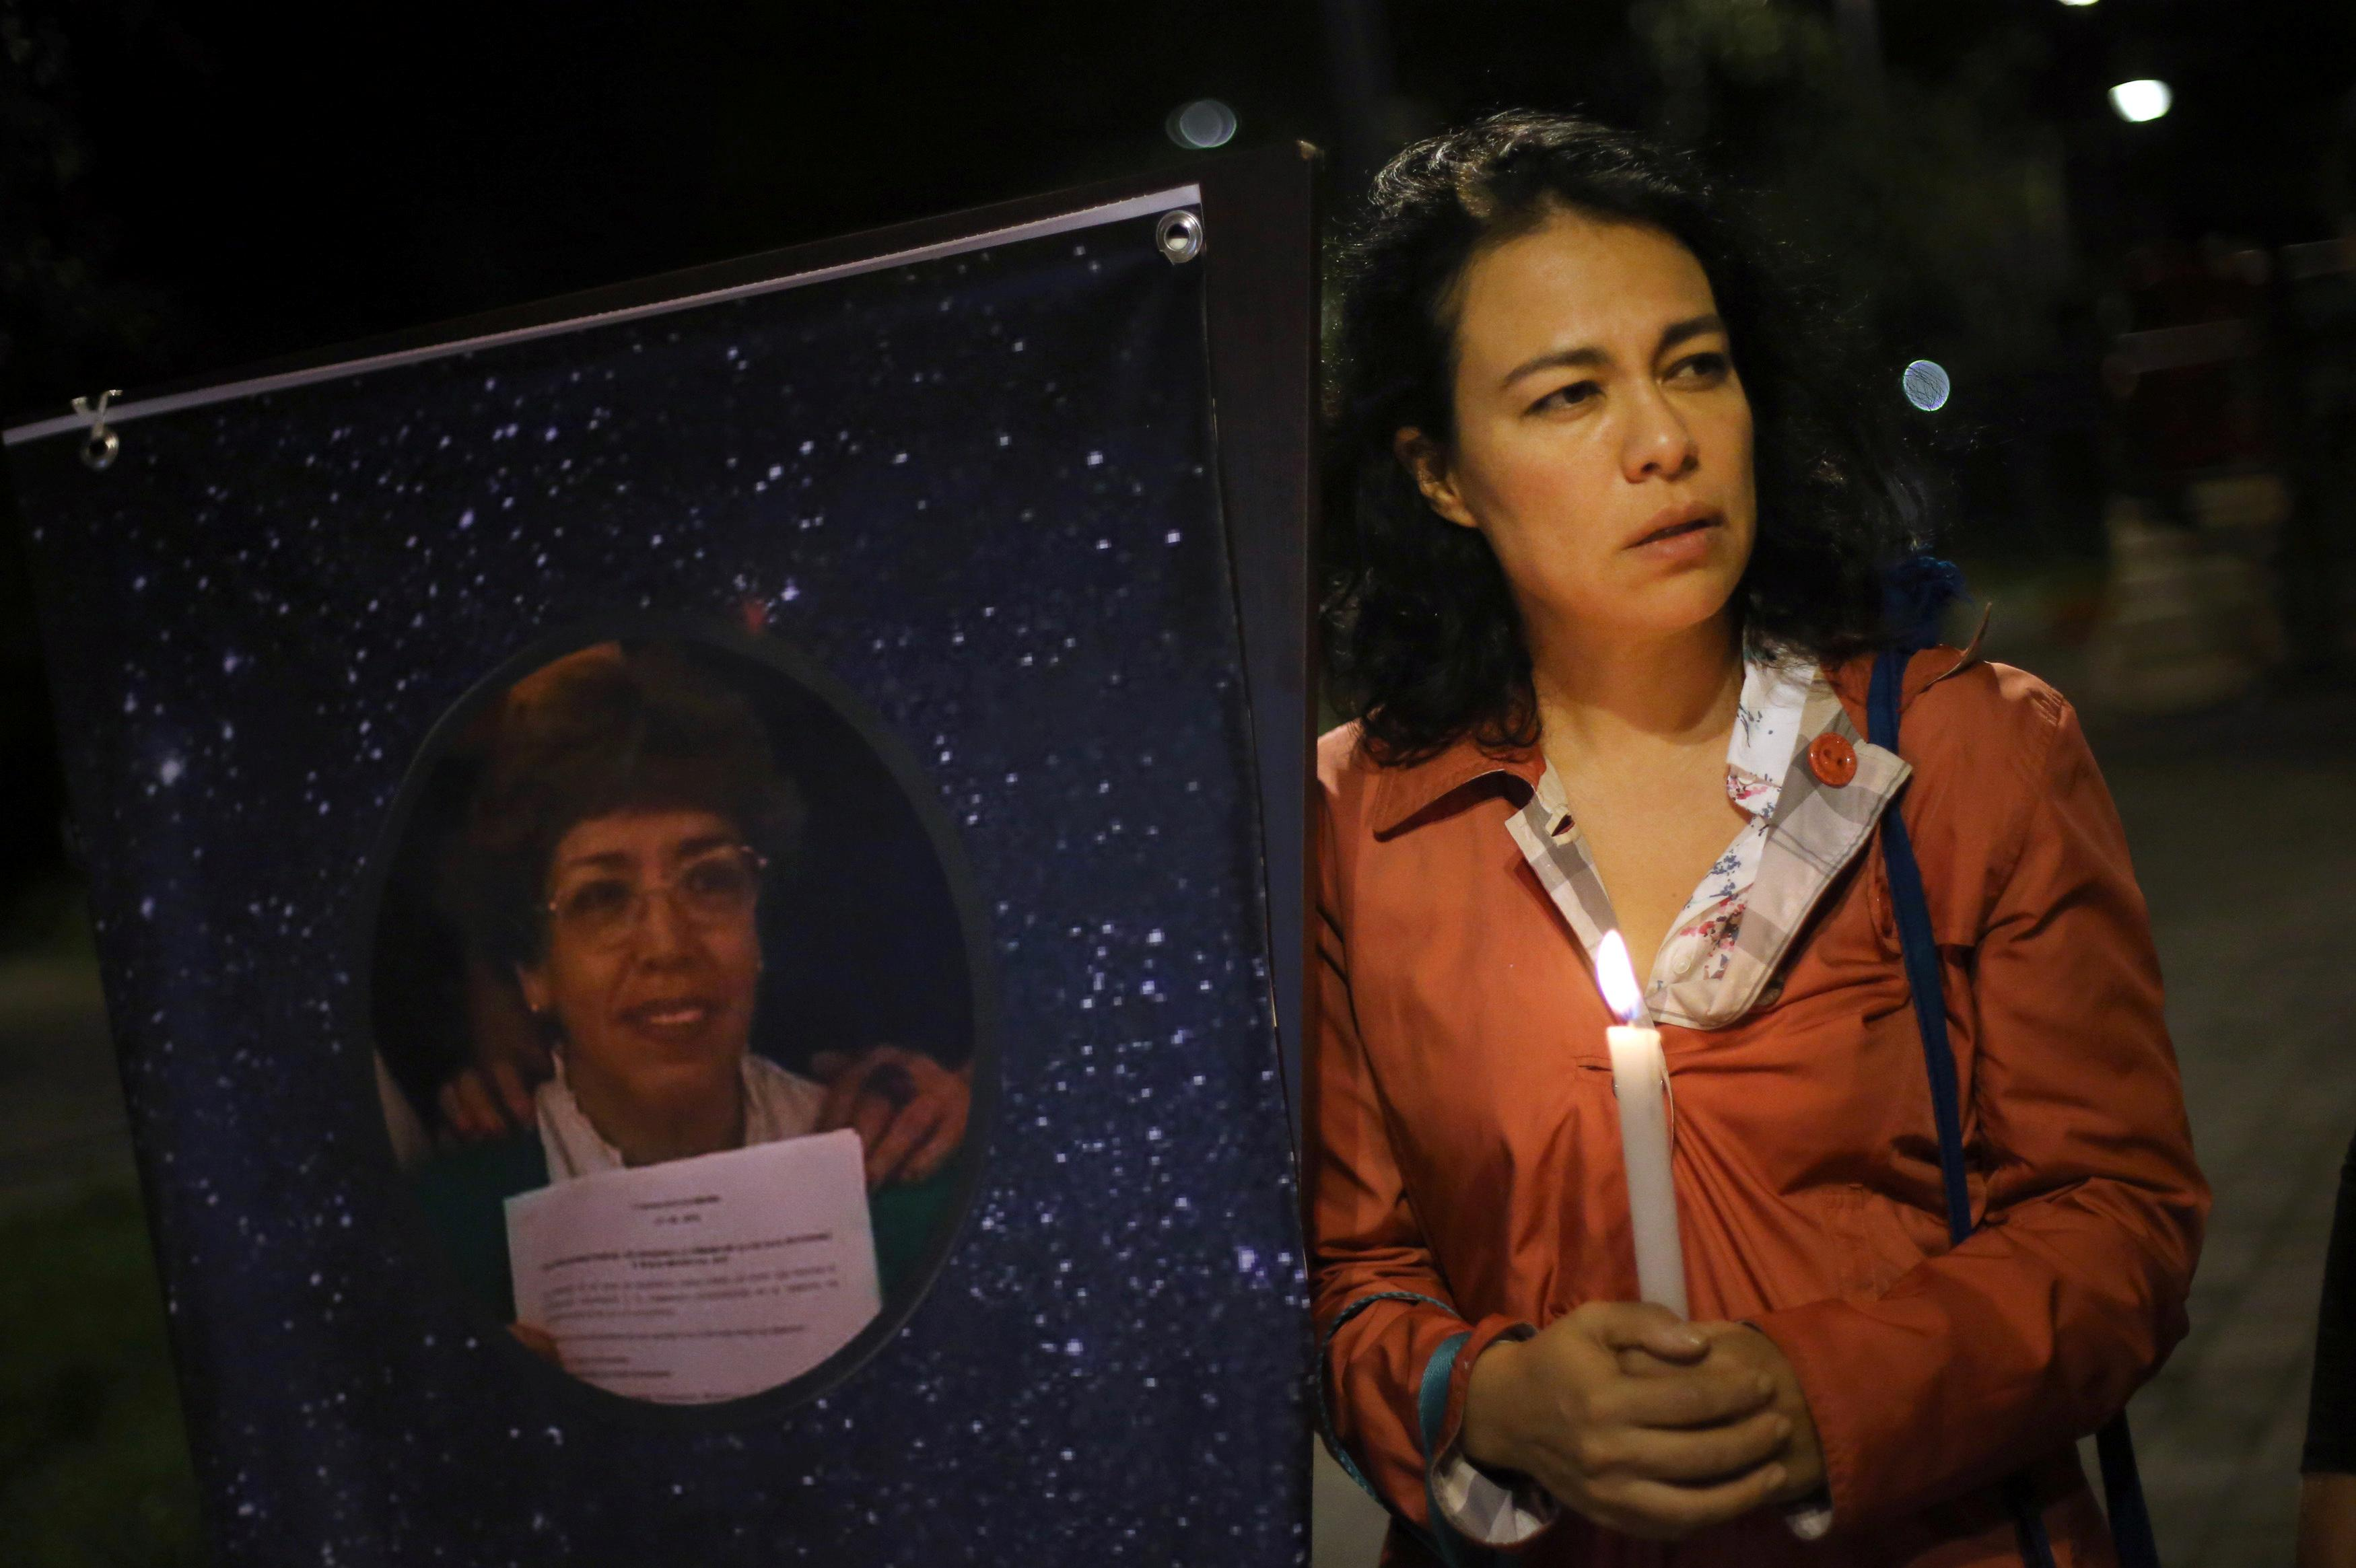 Death of an activist: unsolved murder exposes fraught outlook in...